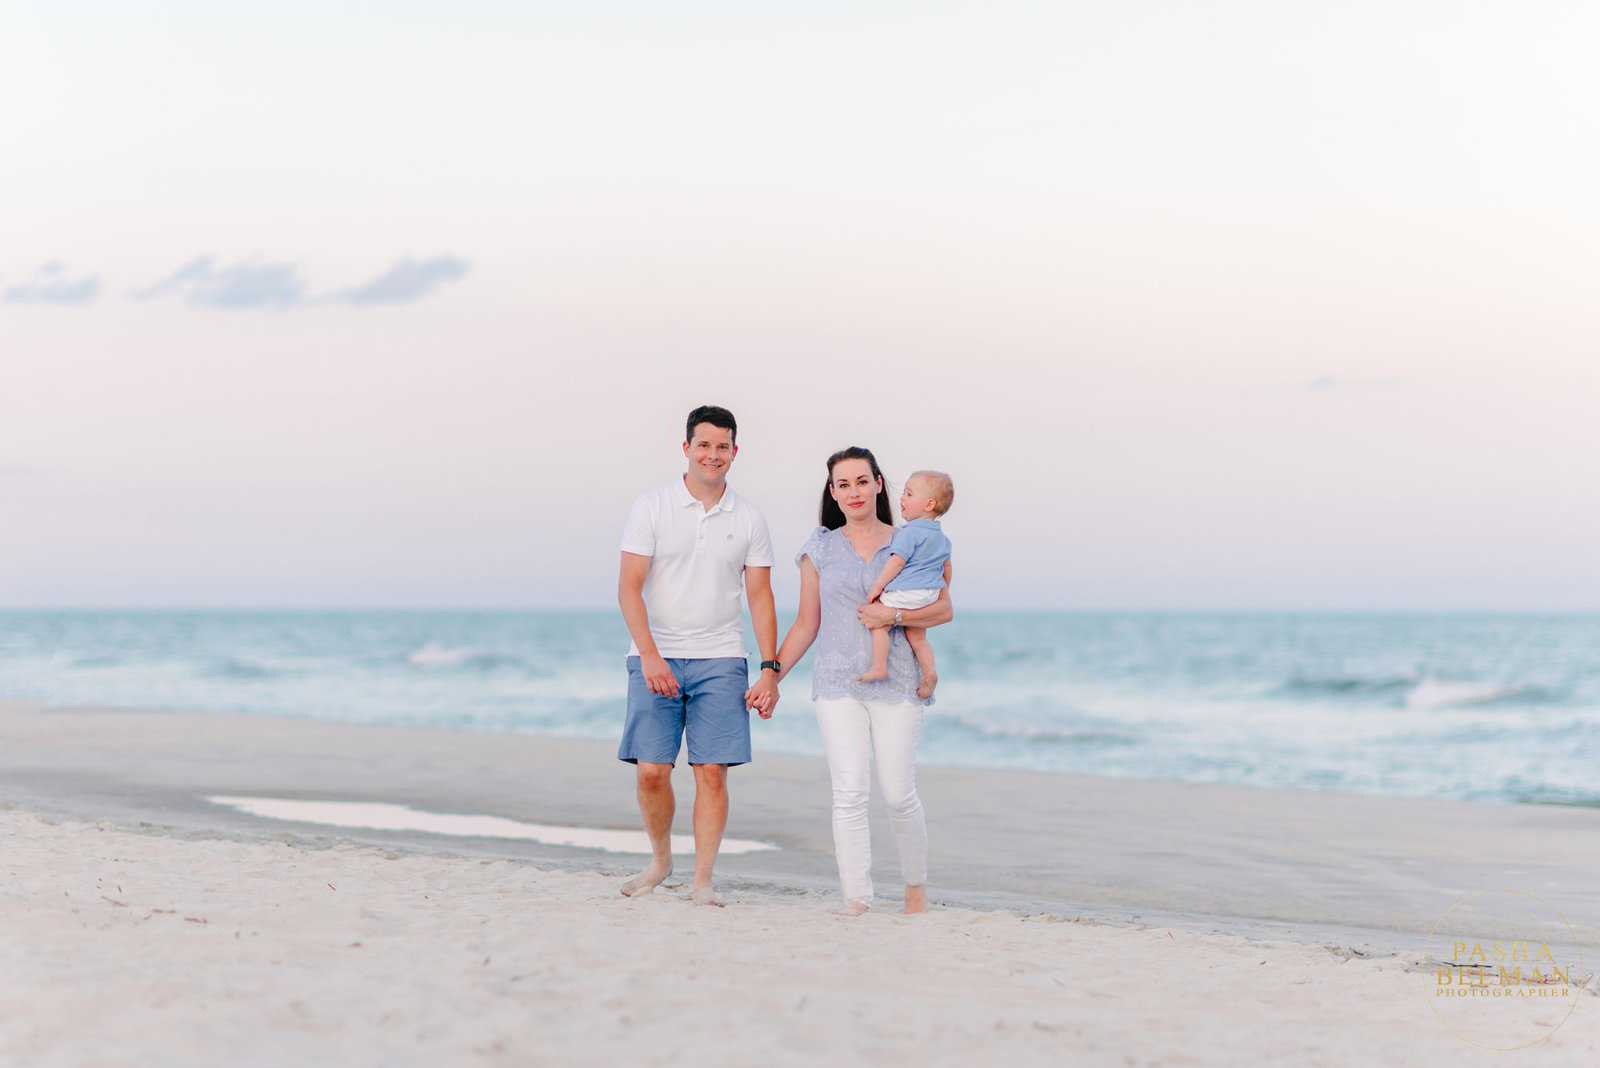 This adorable family session was photographed in Pawleys Island, South Carolina by one of the most recognized Family Photographer Pasha Belman. -18